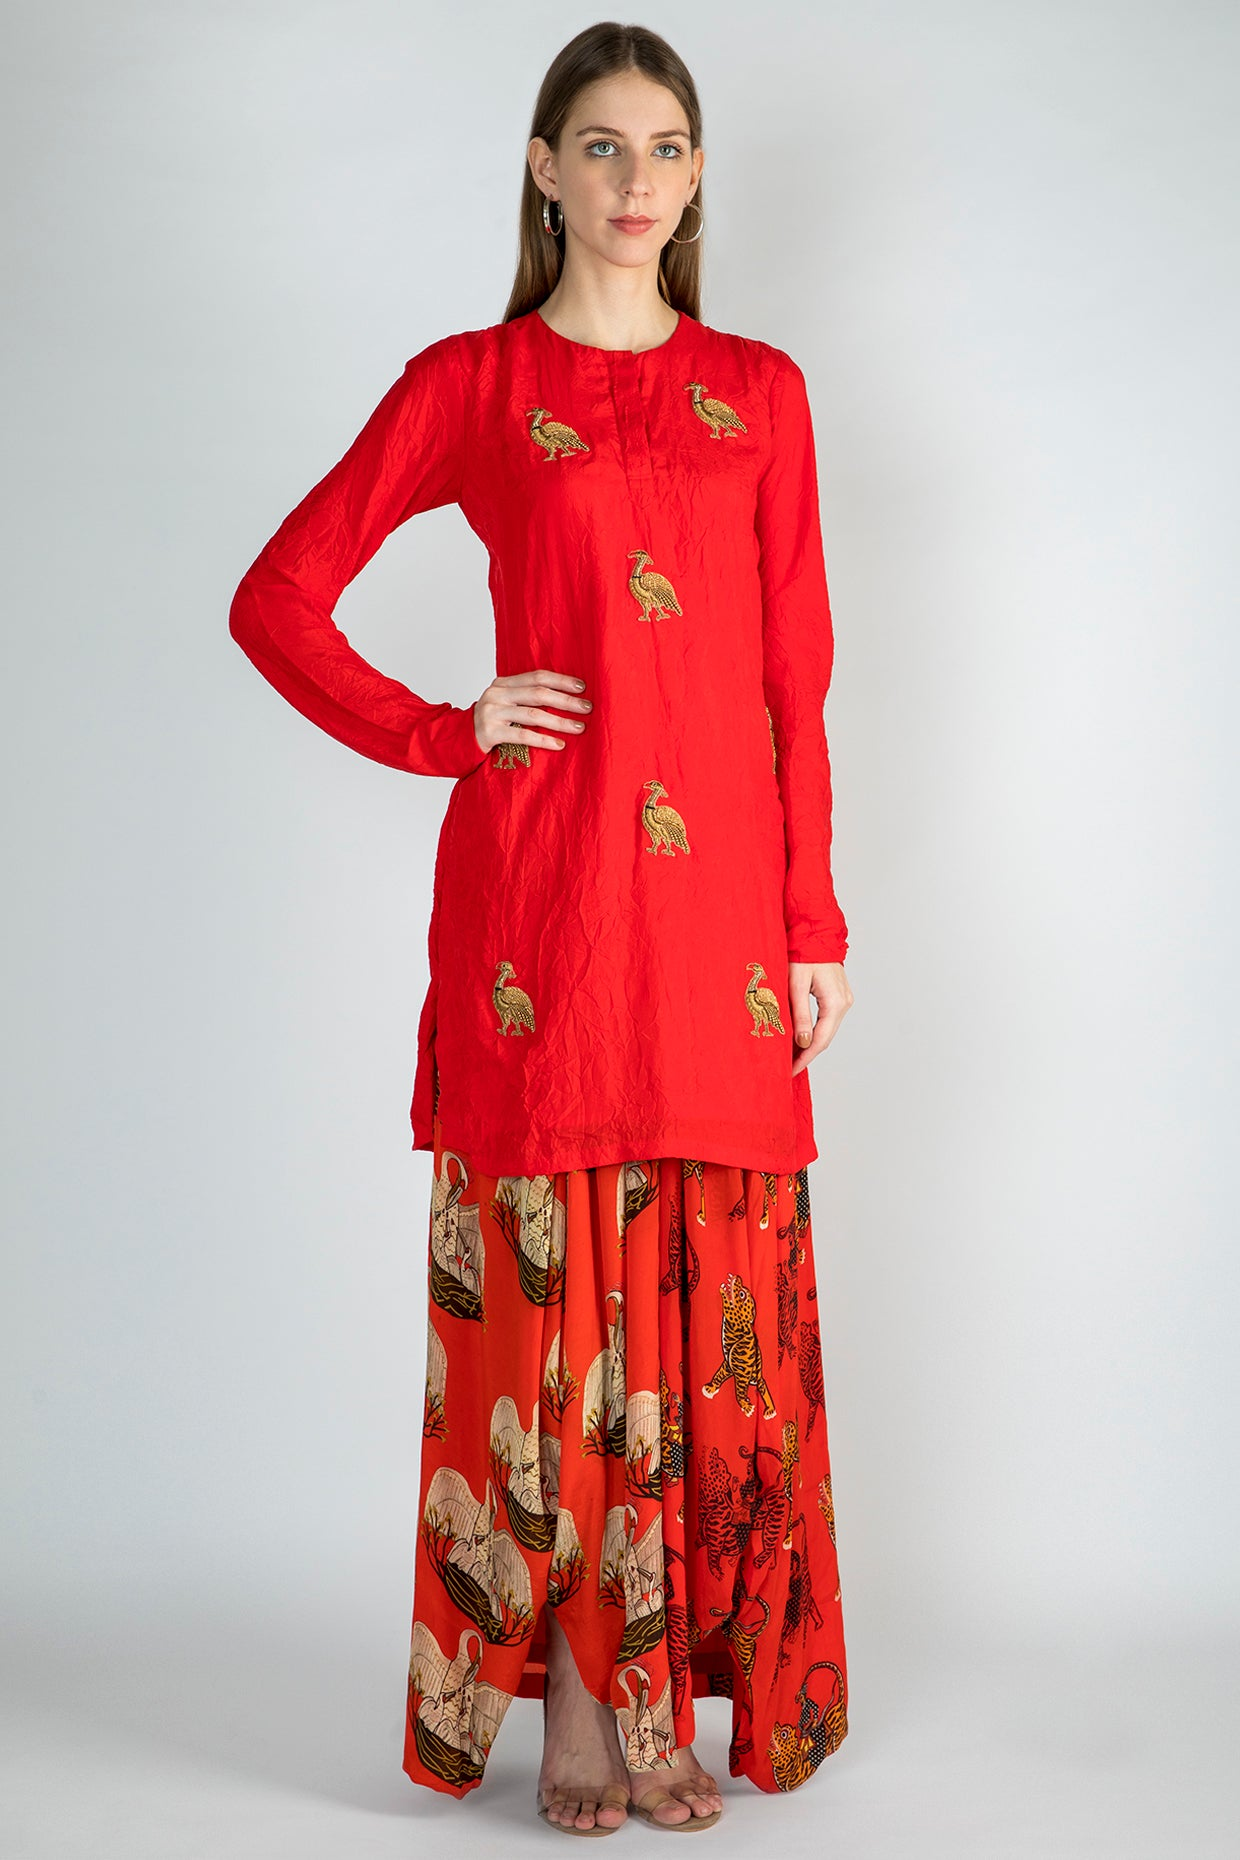 RED CRUSH EMBROIDERED TUNIC WITH RED SULTAN AND TEMPLE SWAN DRAPE SKIRT - The Grand Trunk